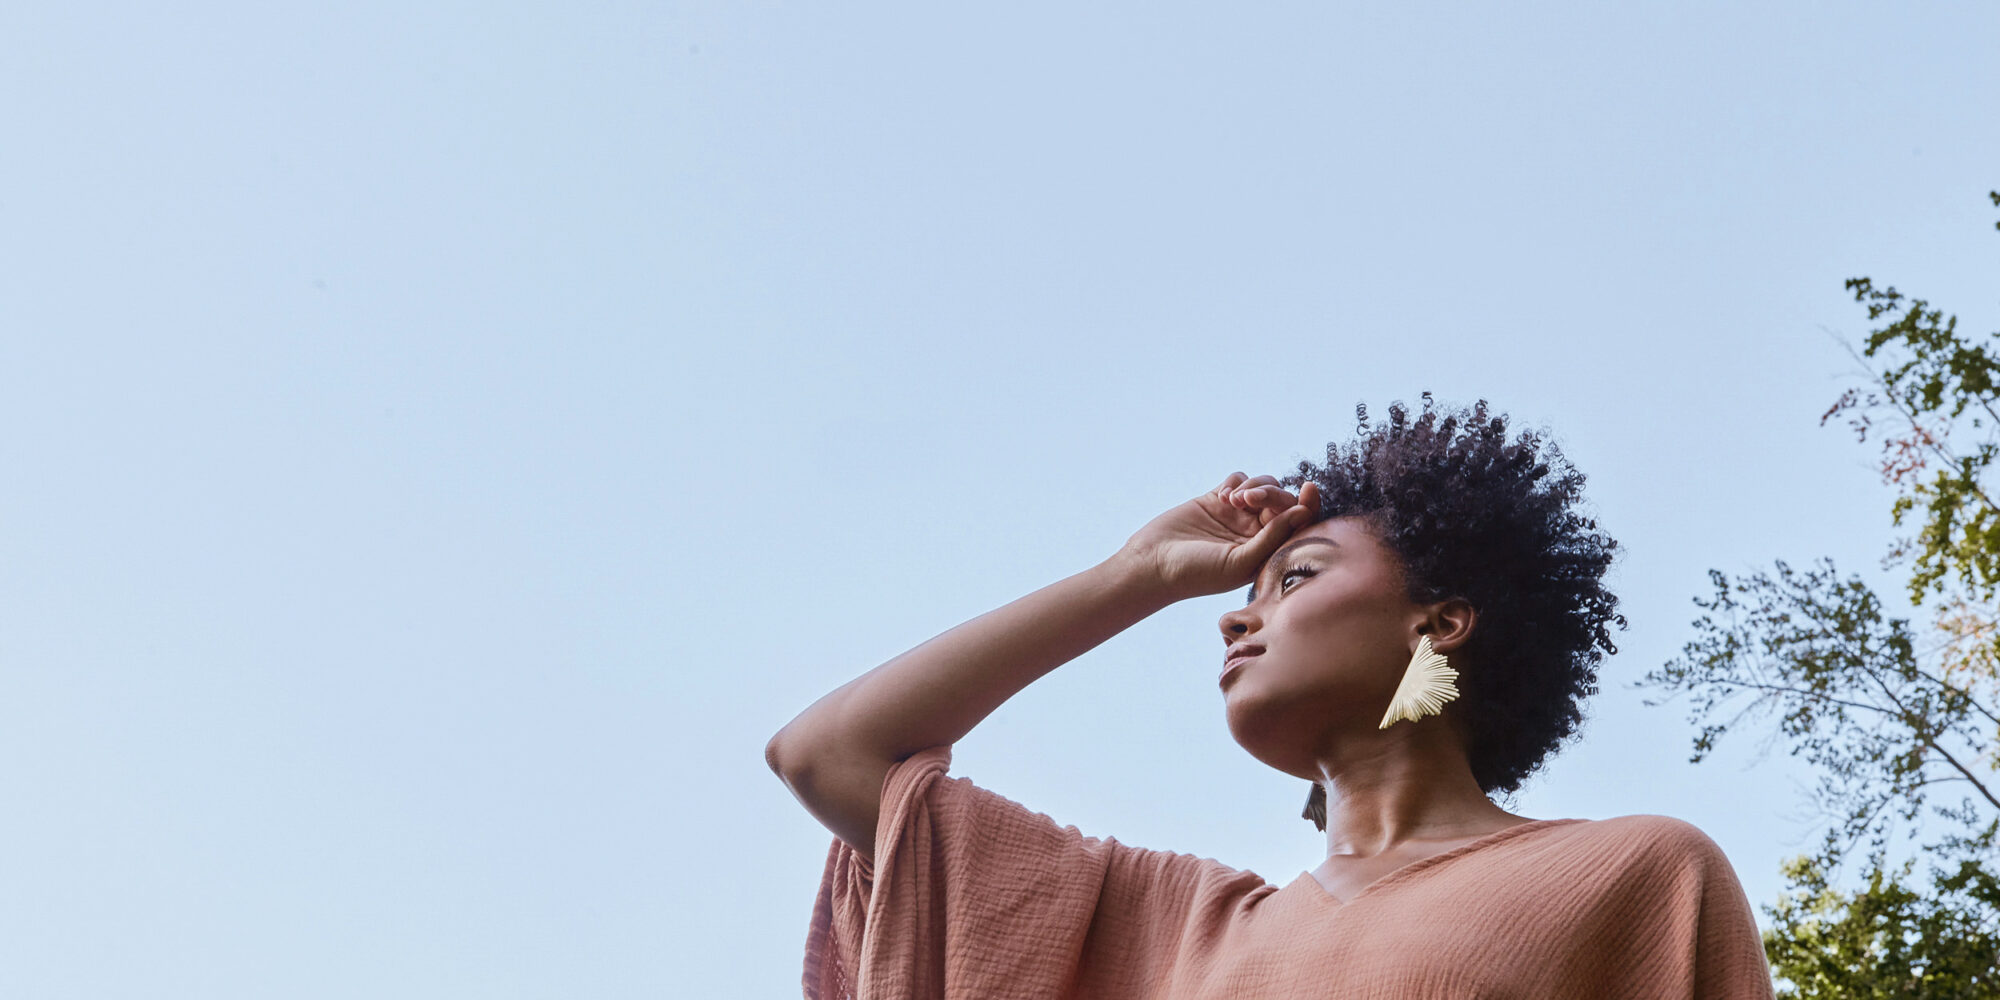 Sanctuaire Is Building An Online Luxury Beauty And Wellness Oasis For BIPOC Brands And Shoppers